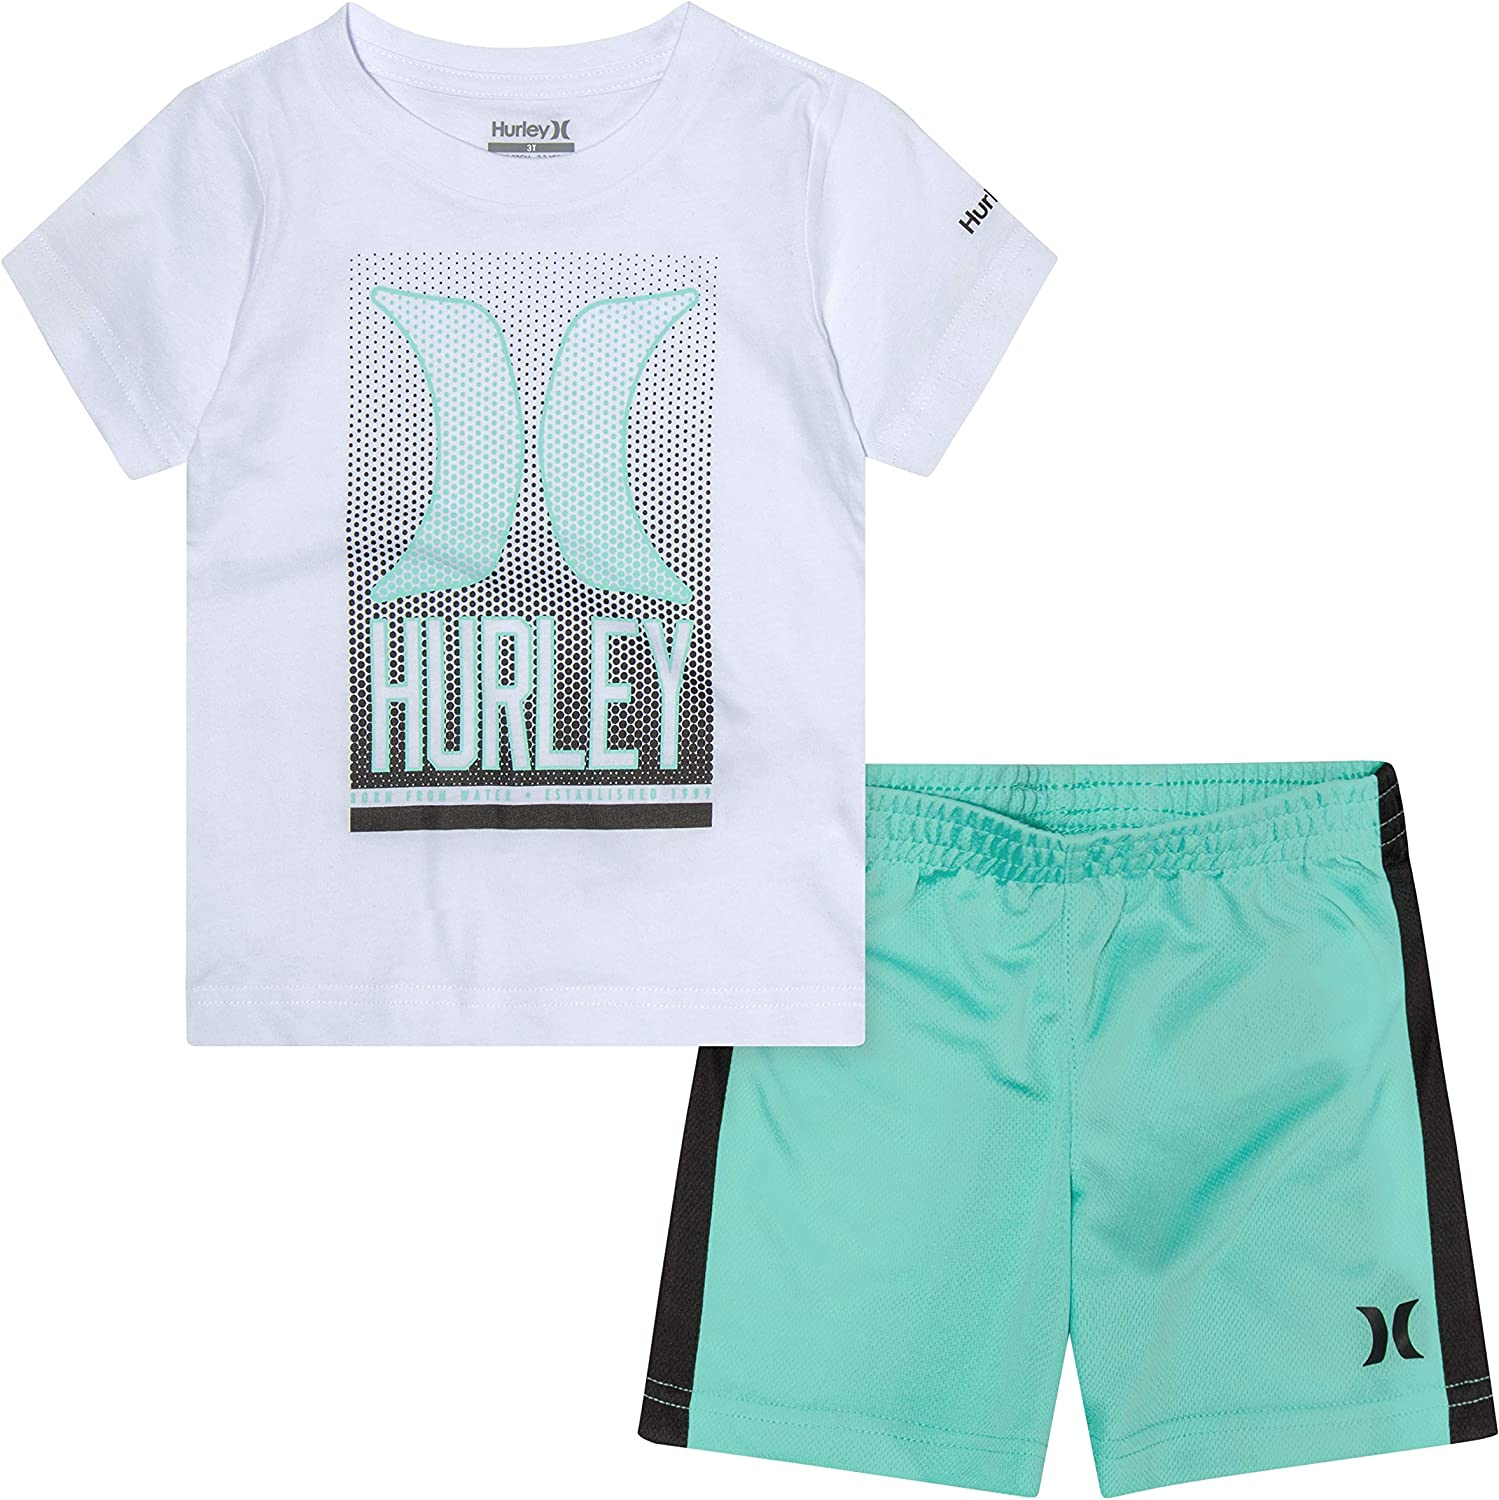 Hurley Baby Boys' Graphic T-Shirt and Shorts 2-Piece Outfit Set